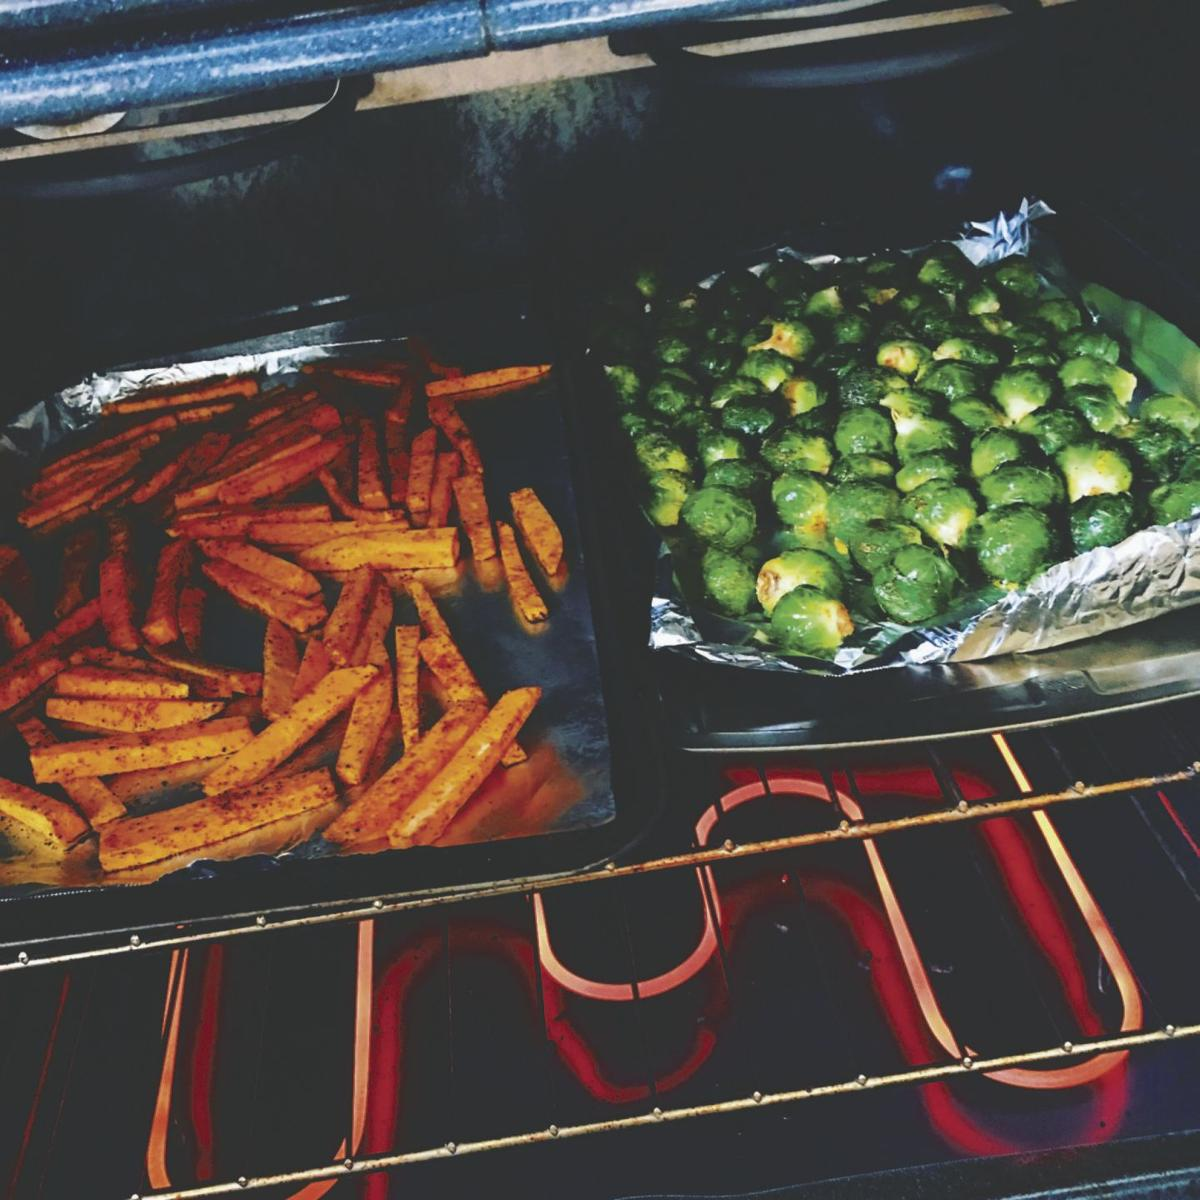 Clean Meals: Food prep can make healthy eating easy